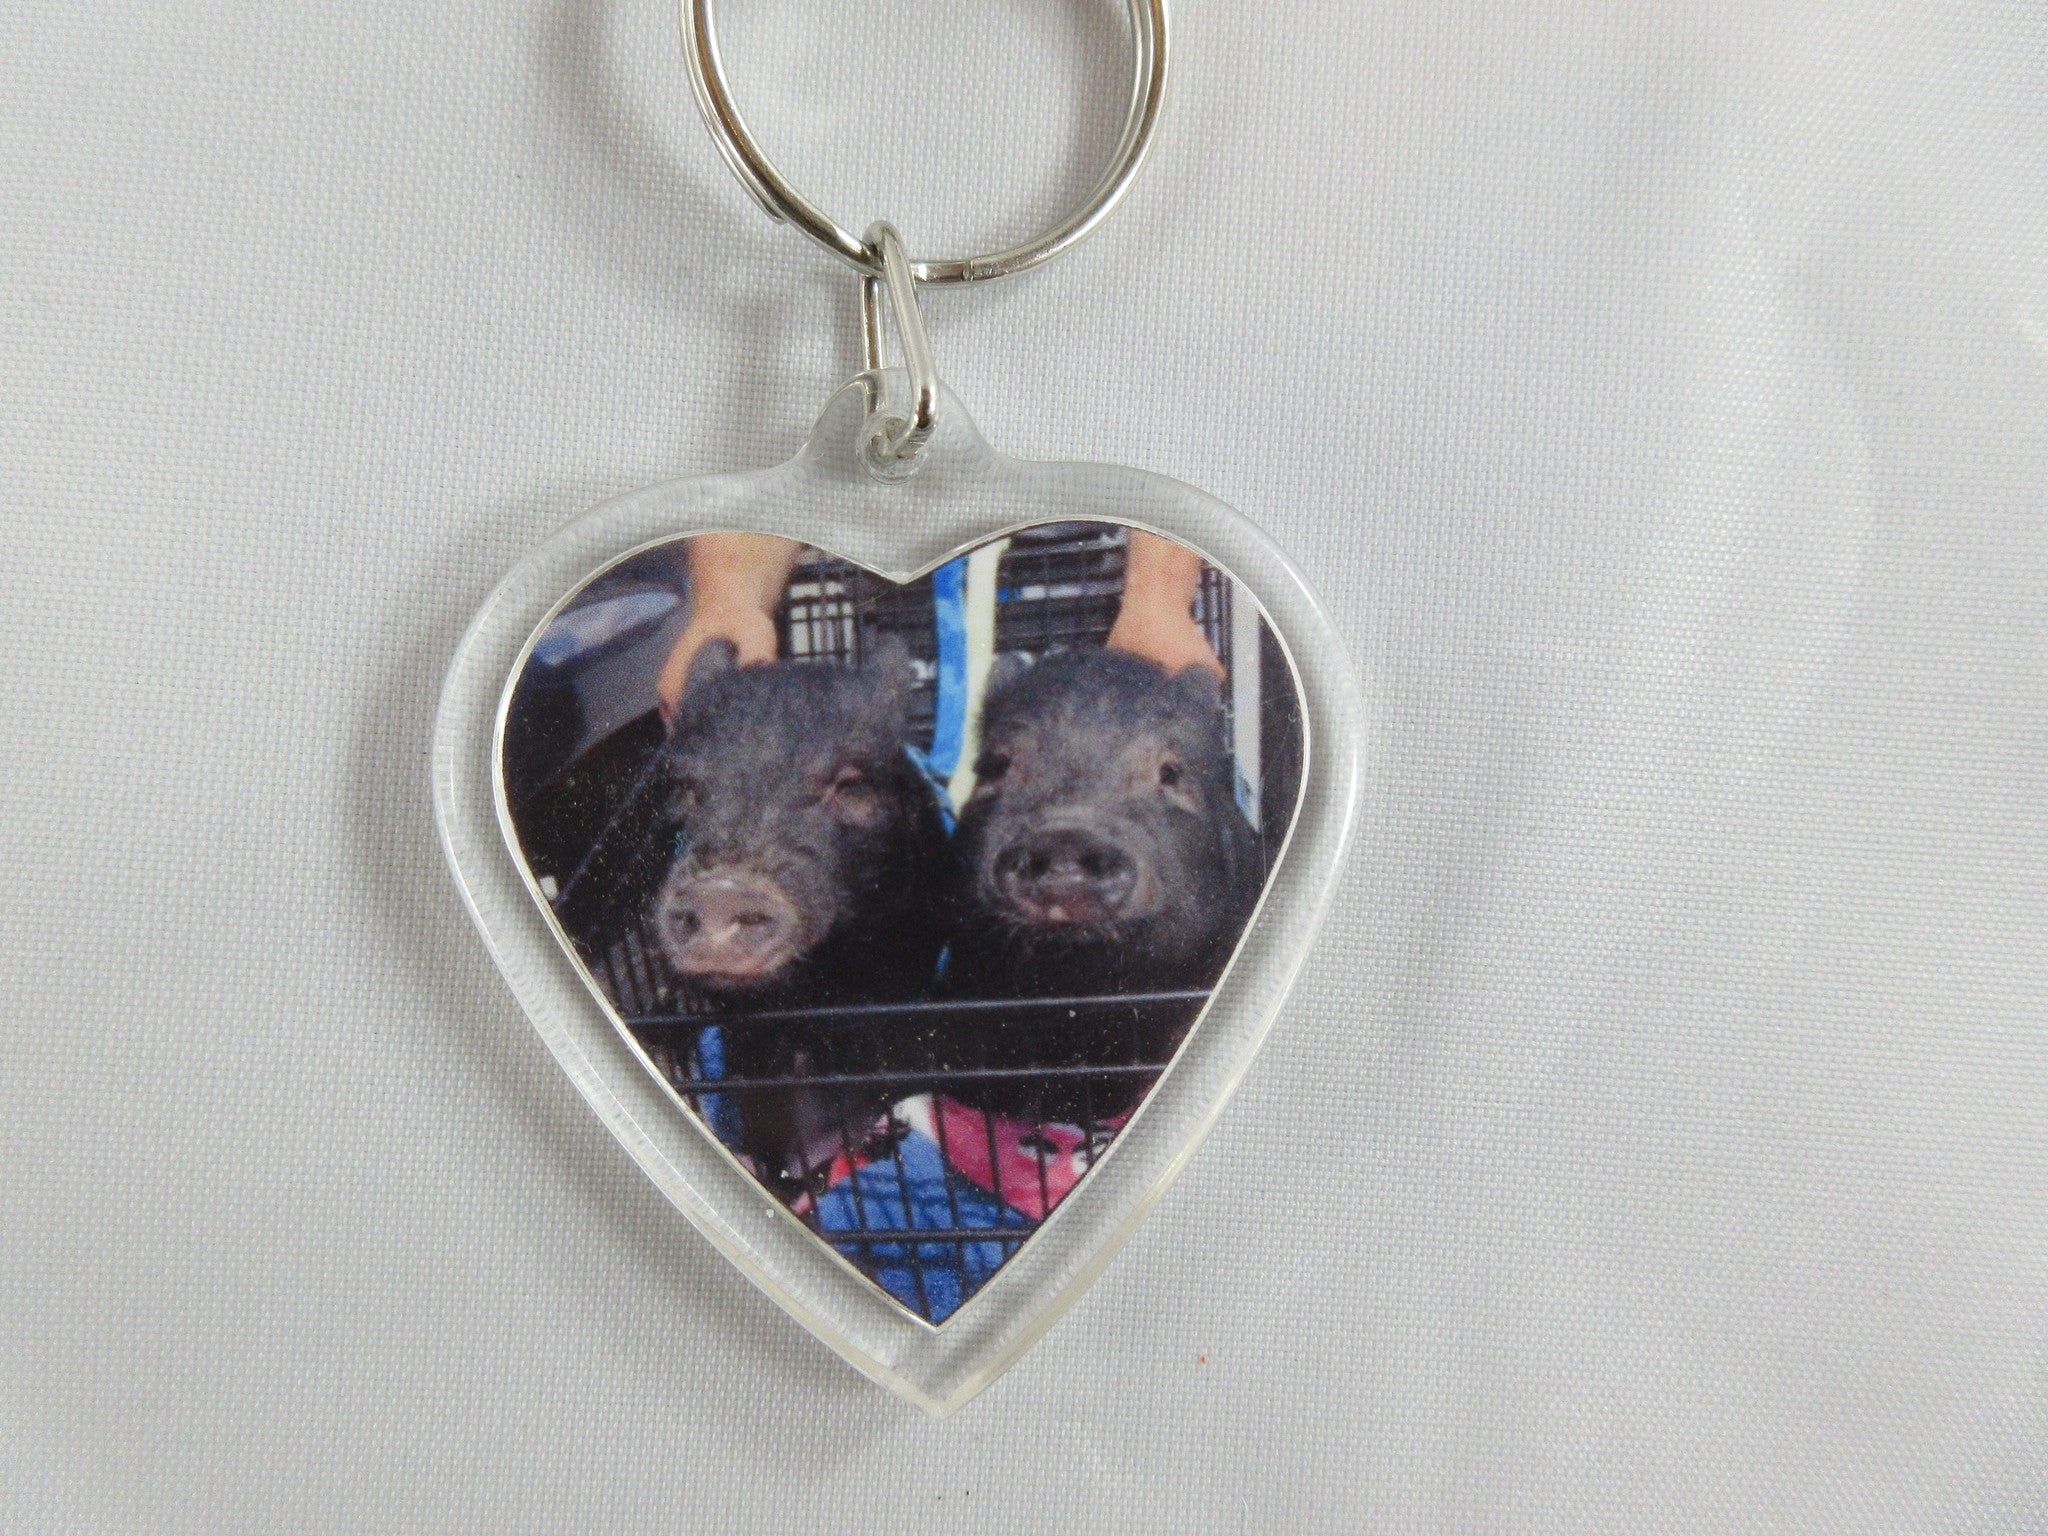 Heart Shaped Key Chain - Penny and Hoover's Pig Pen